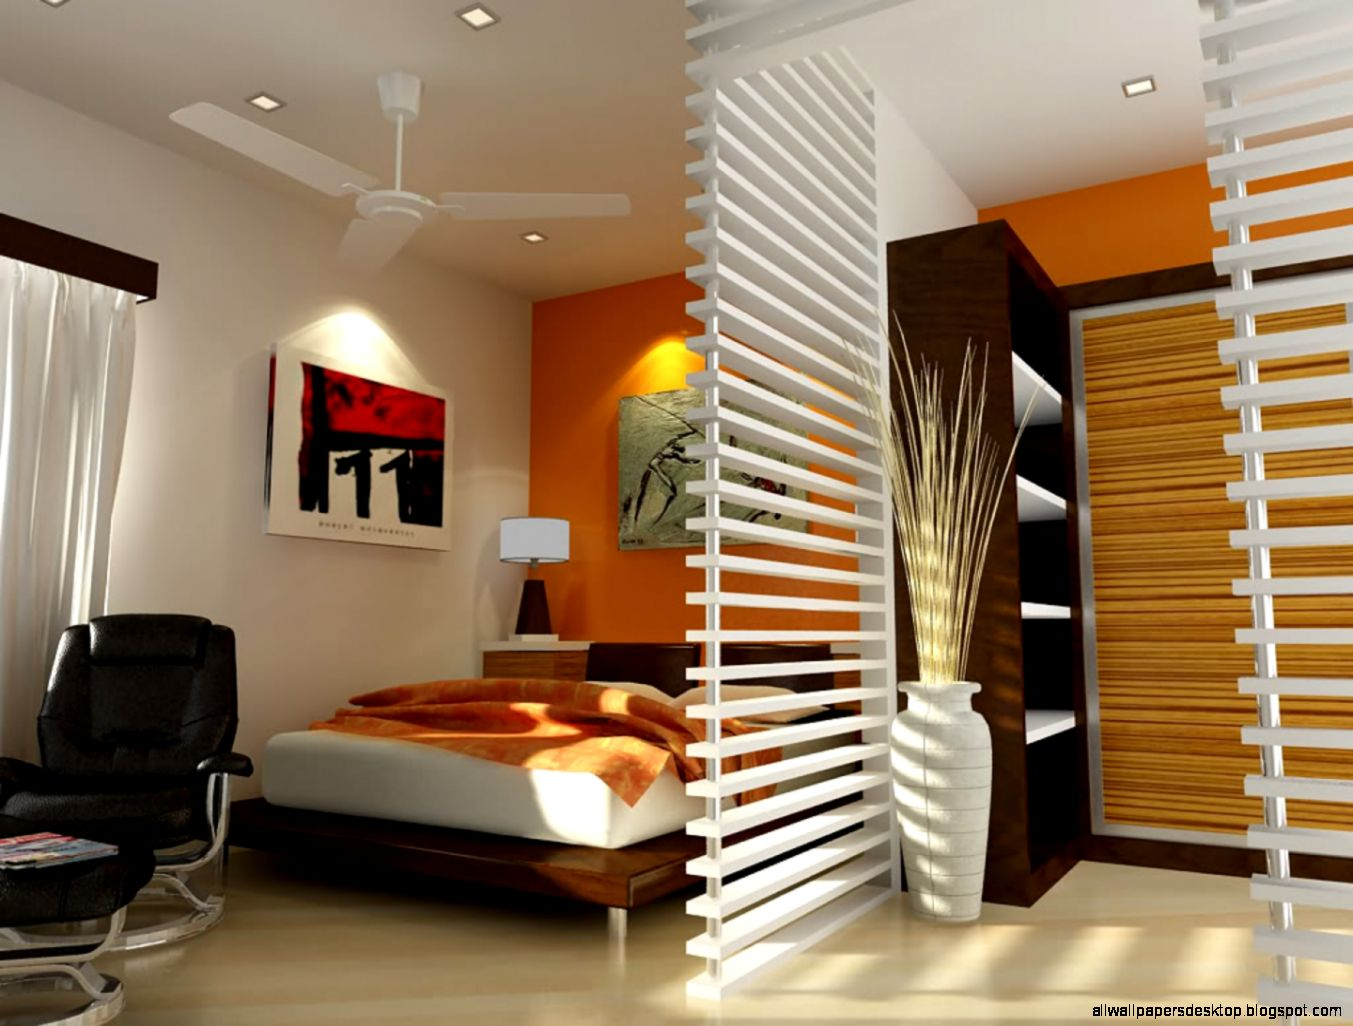 New interior design room wallpaper hd all wallpapers desktop for Home wallpaper designs 2013